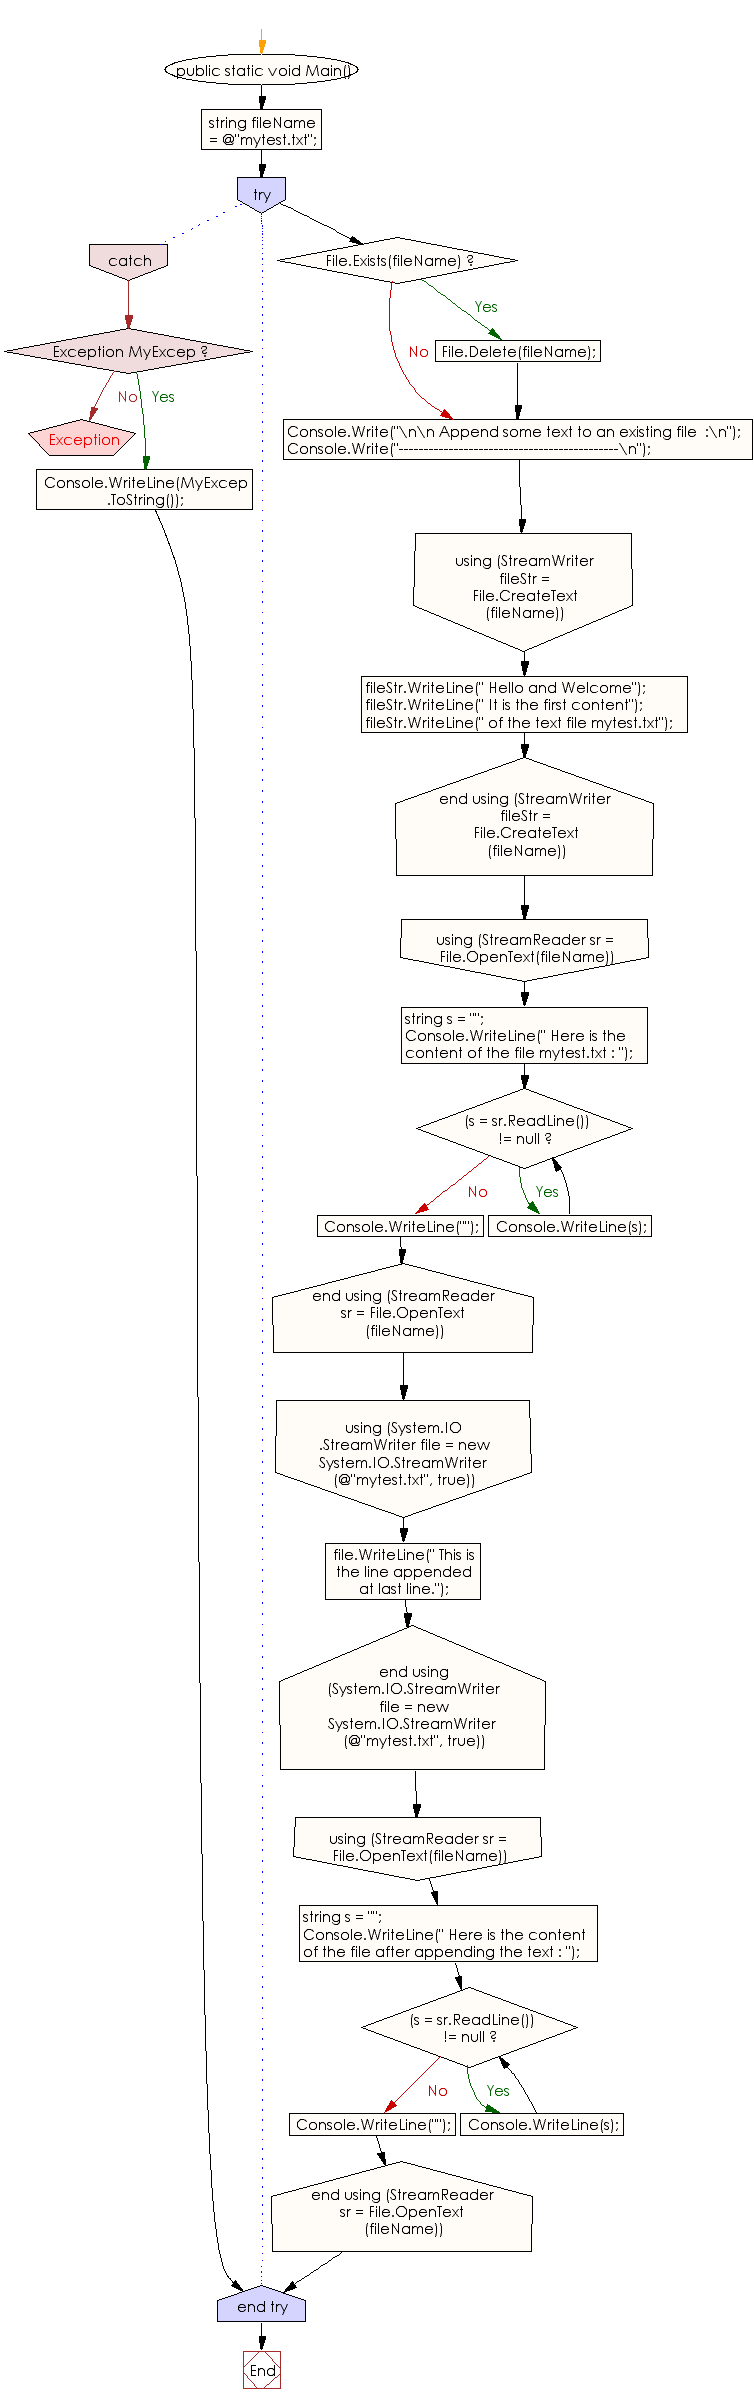 Flowchart: C# Sharp Exercises - Append some text to an existing file